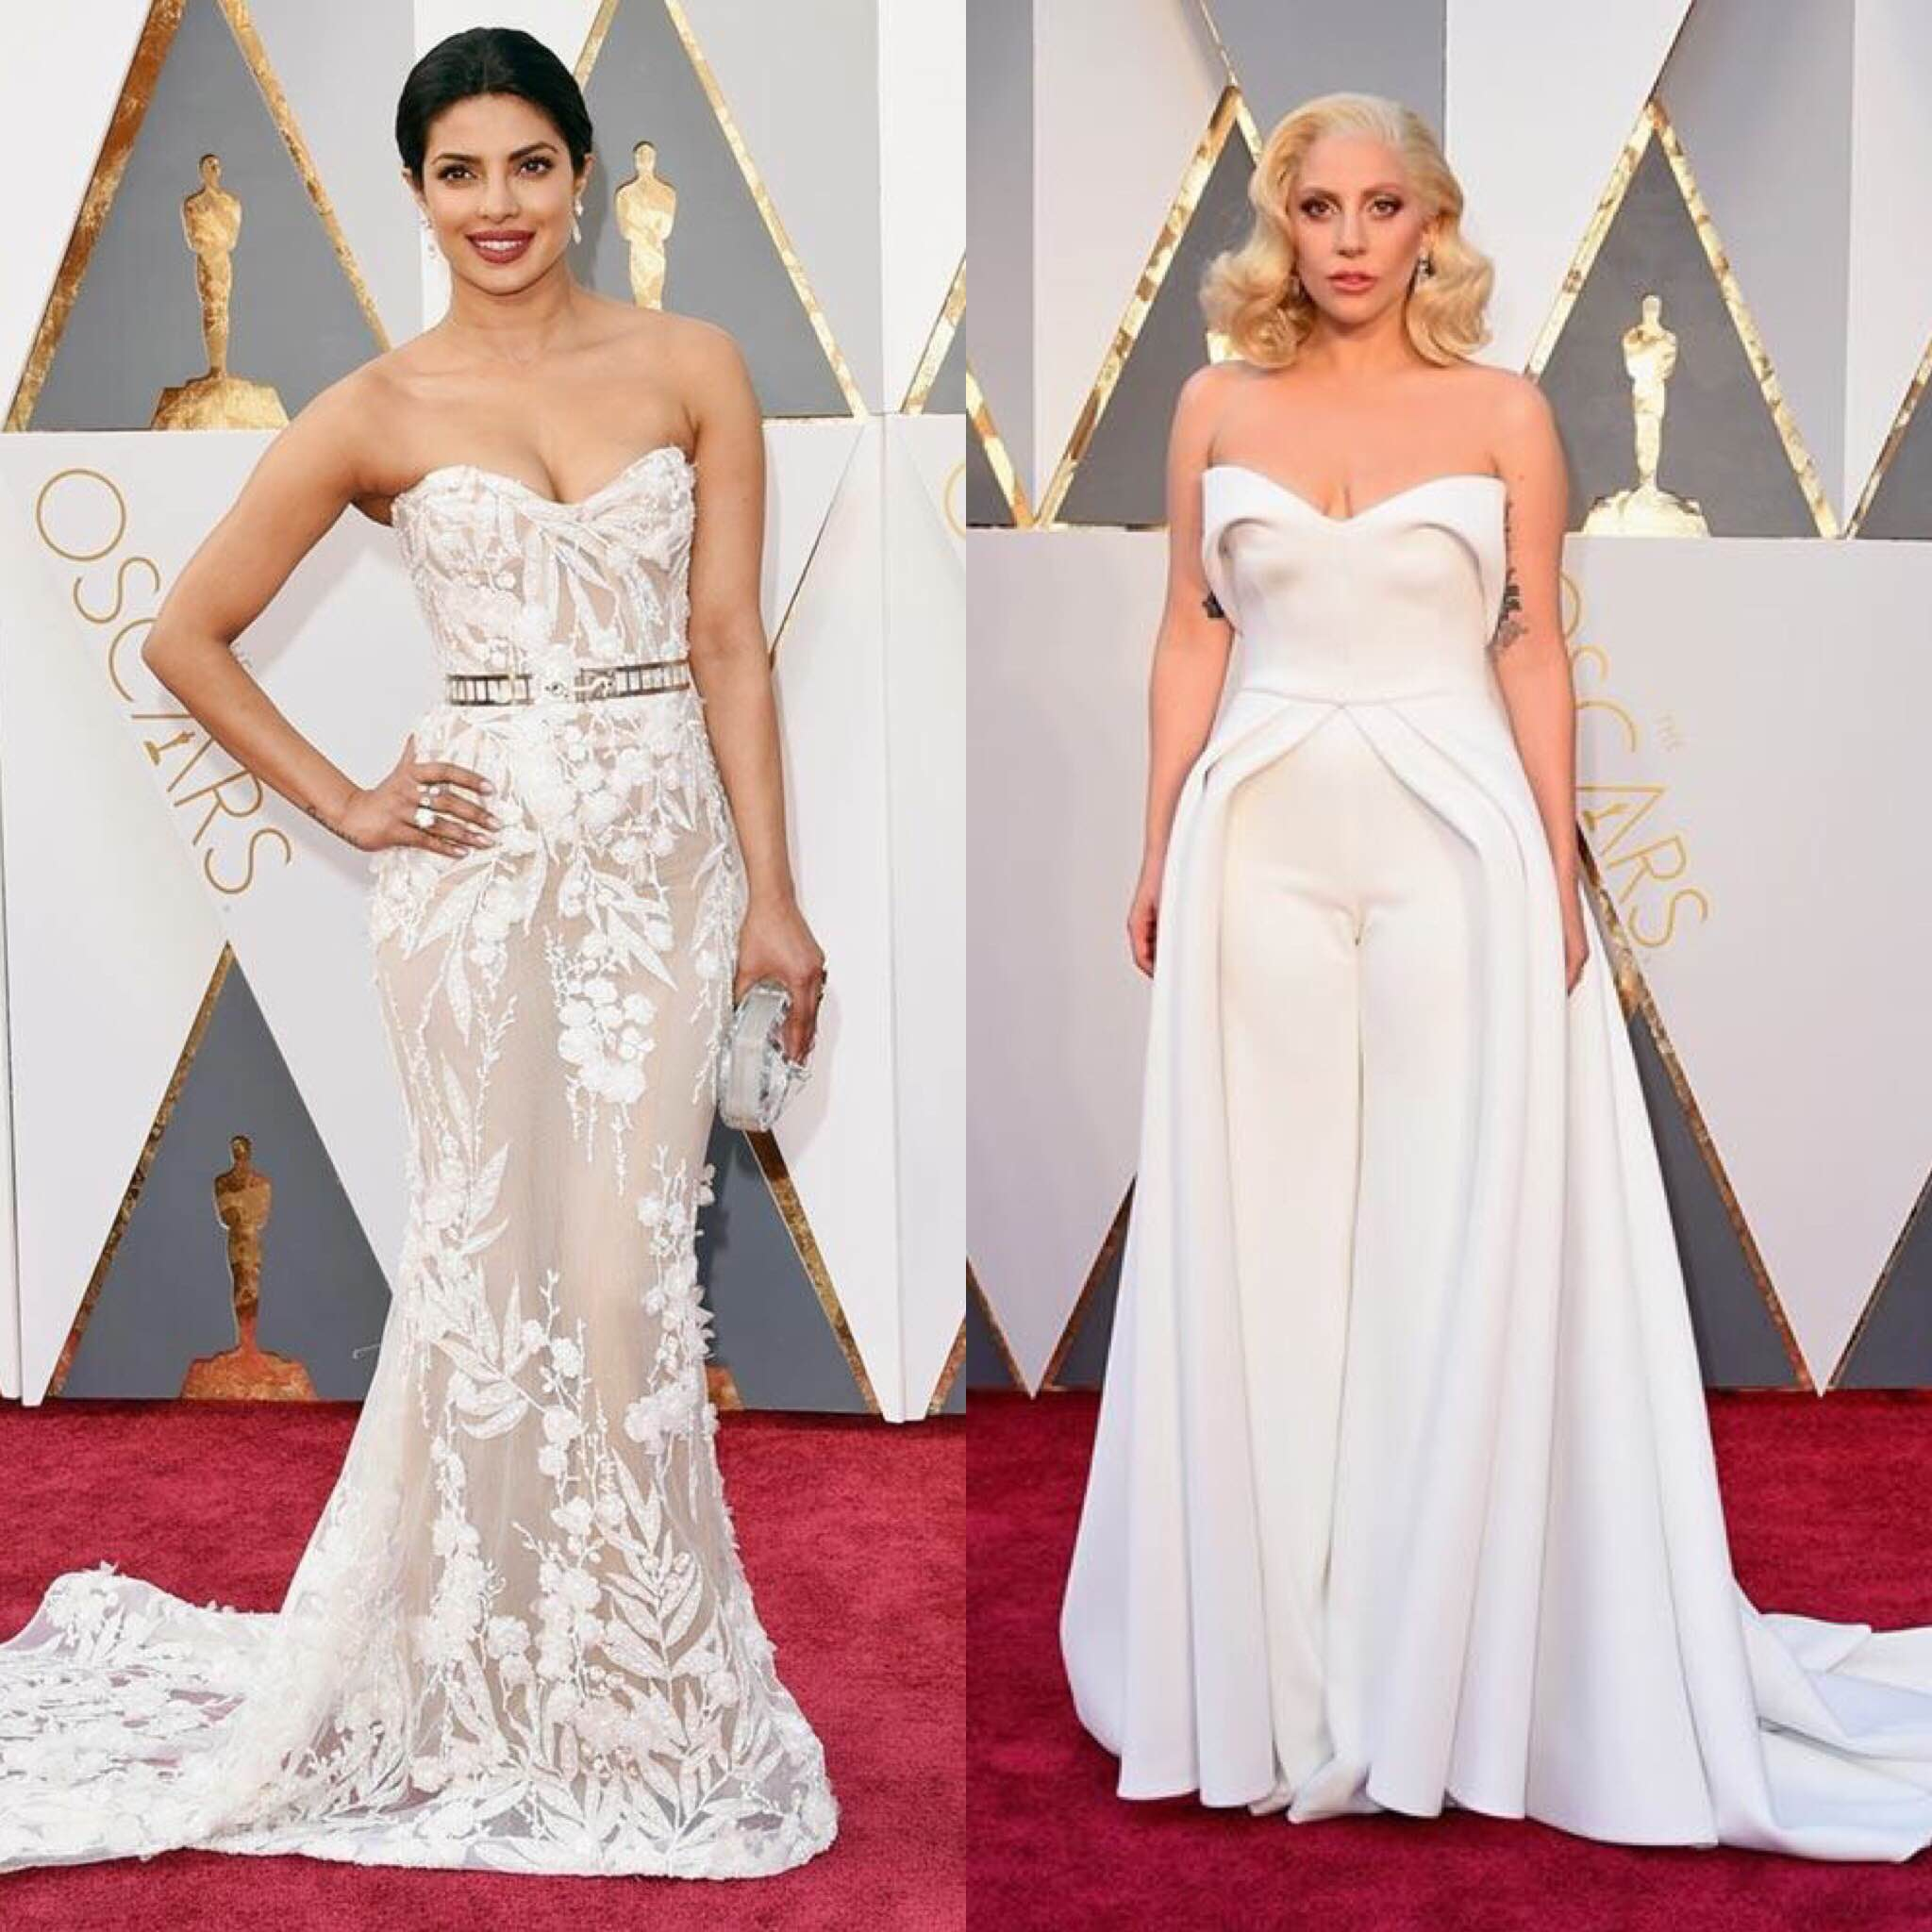 Best Dressed From The Oscars